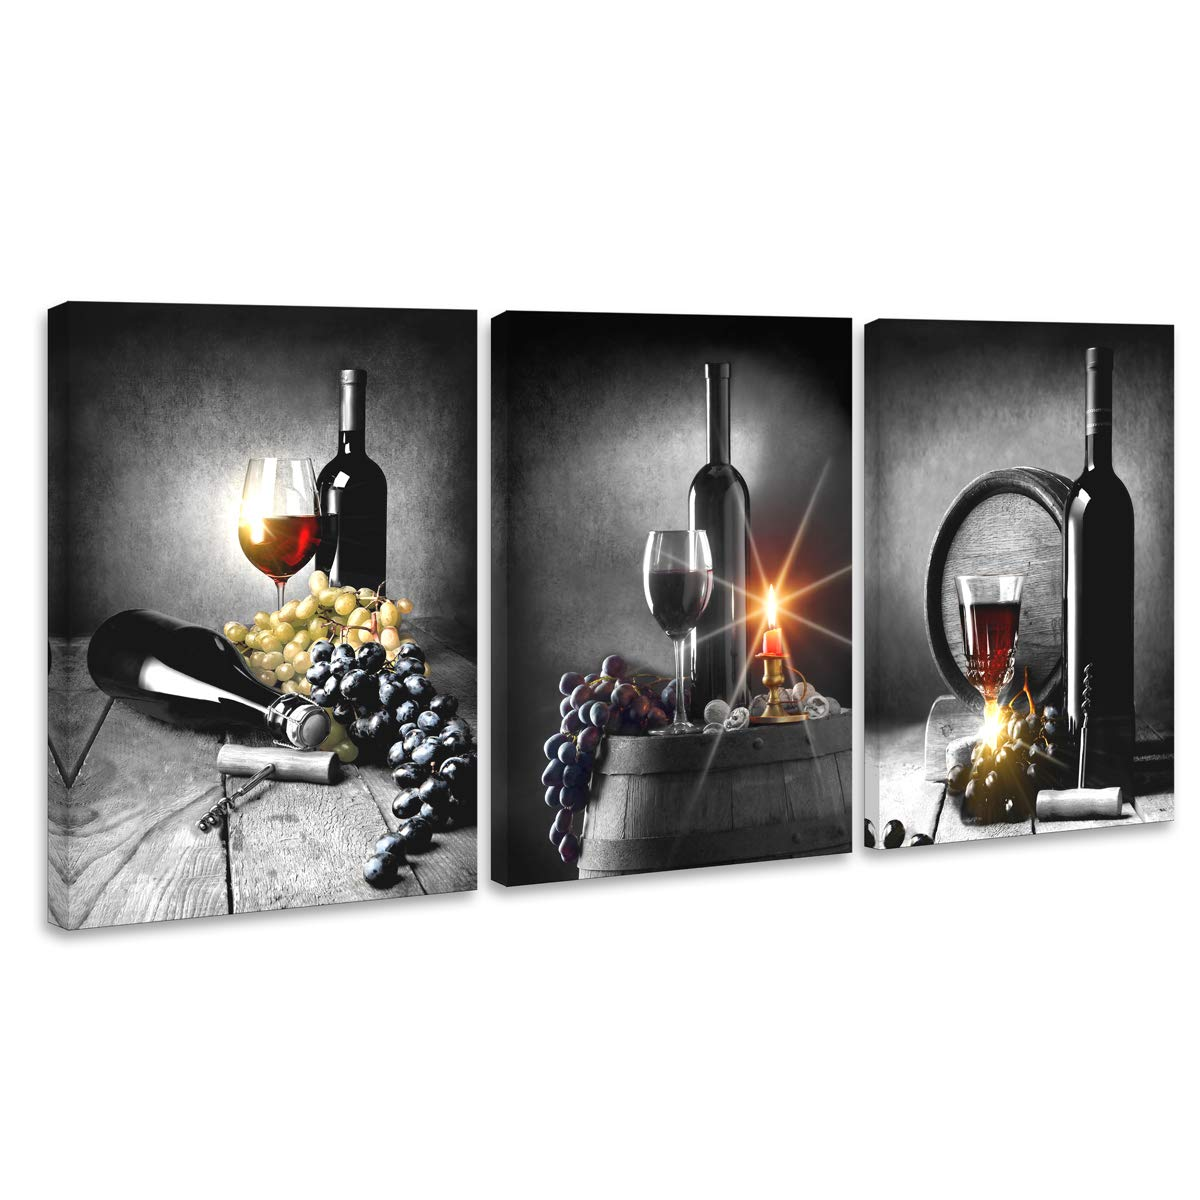 Wall Art Wine With Grape Wall Art For Kitchen Painting Pictures Print On Canvas For Home Modern Decoration Canvas Art Home Wall Decor